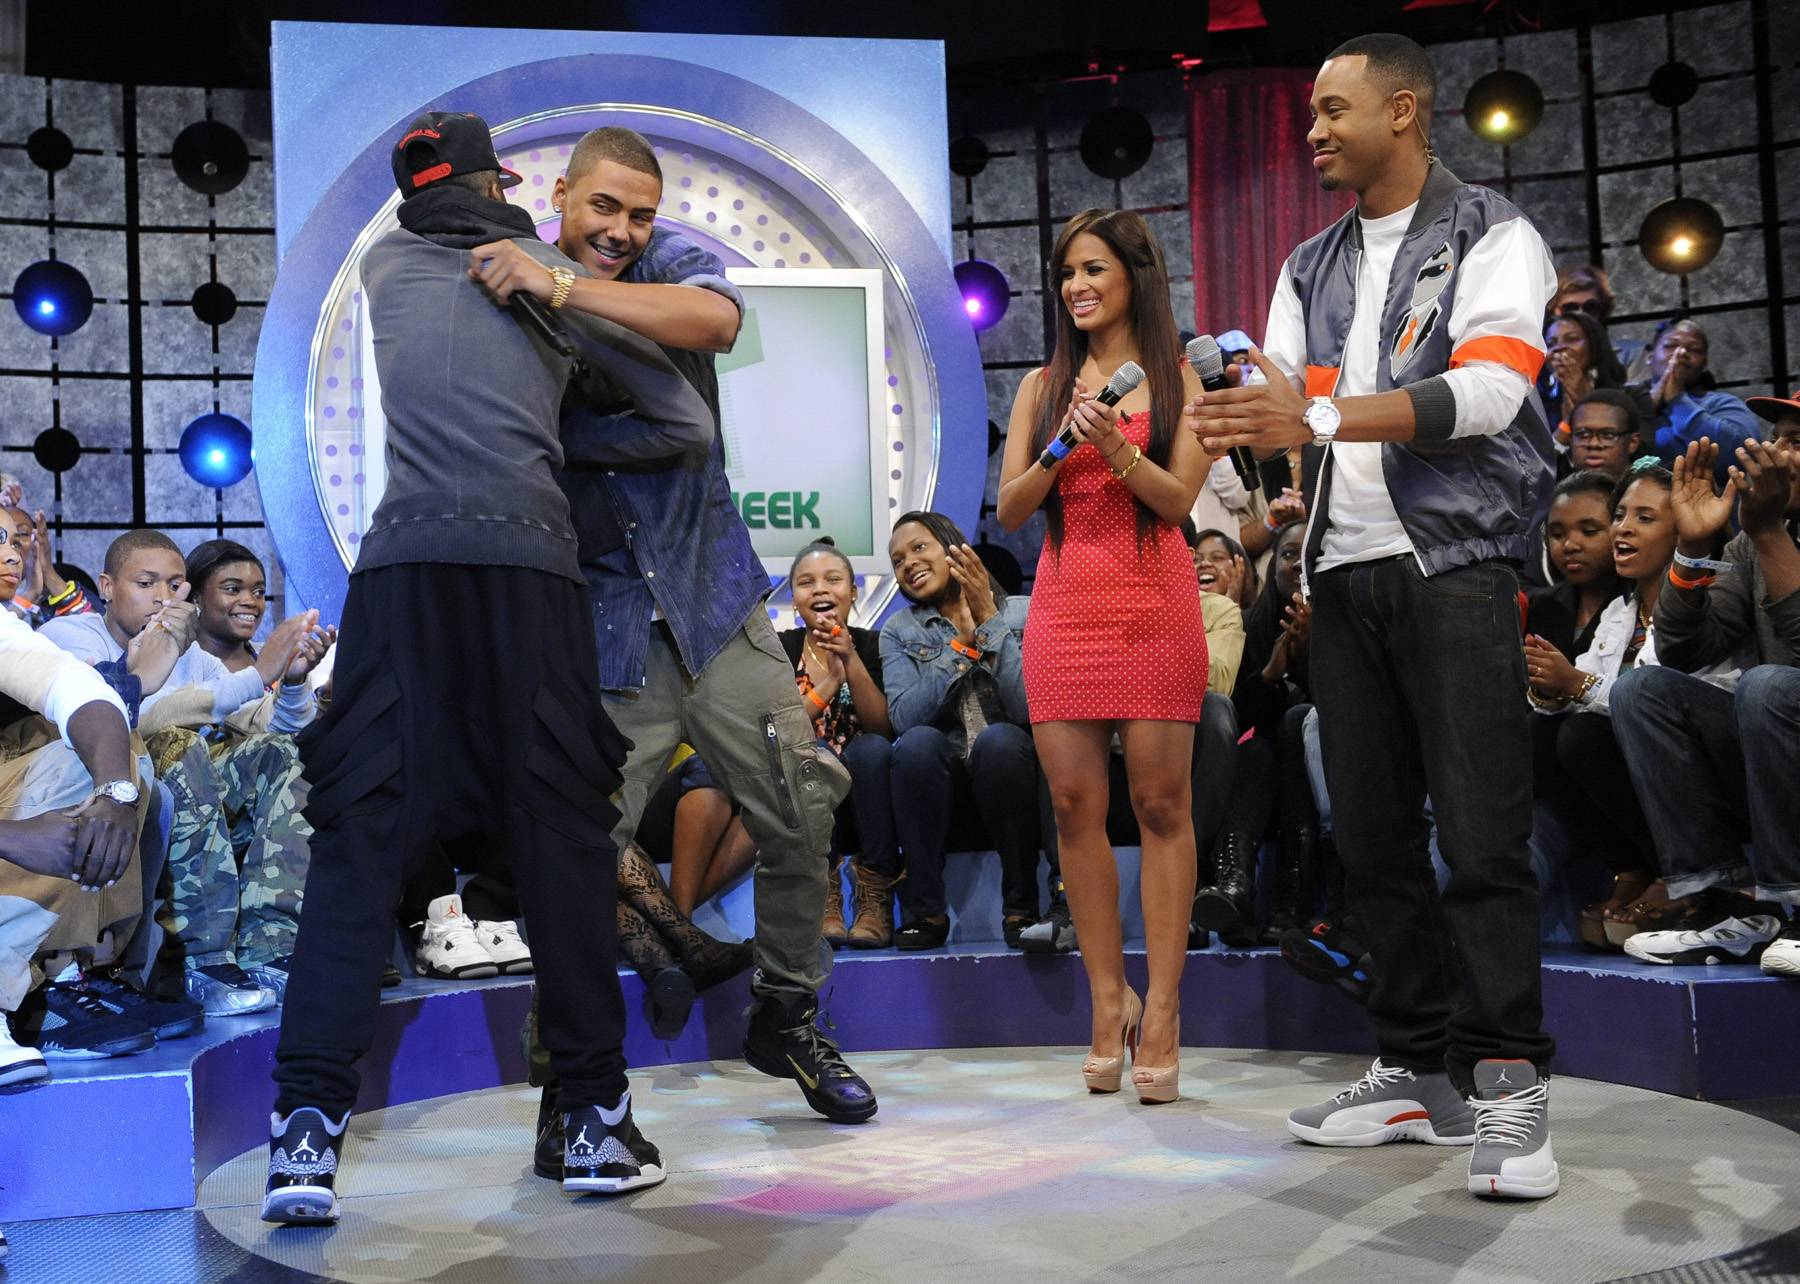 Mad Love, B - Kendre joins Quincy, Terrence J and Rocsi Diaz at 106 & Park, May 3, 2012. (Photo: John Ricard / BET)